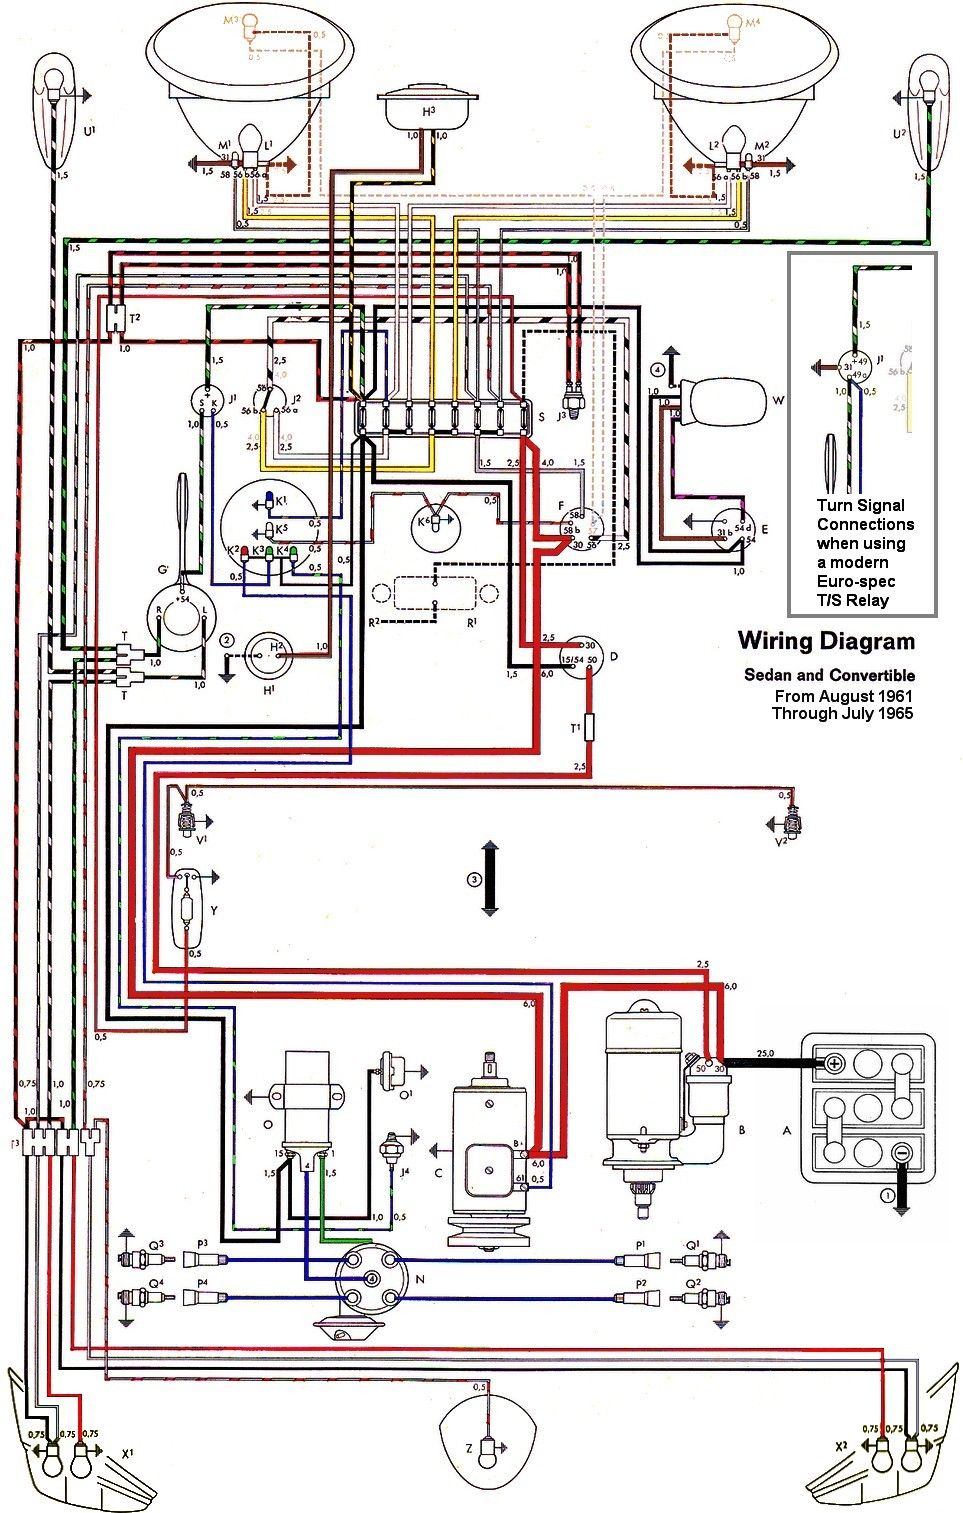 Wiring Diagram Vw Beetle Sedan And Convertible 1961 1965 1962 Chevy C10 Steering Column